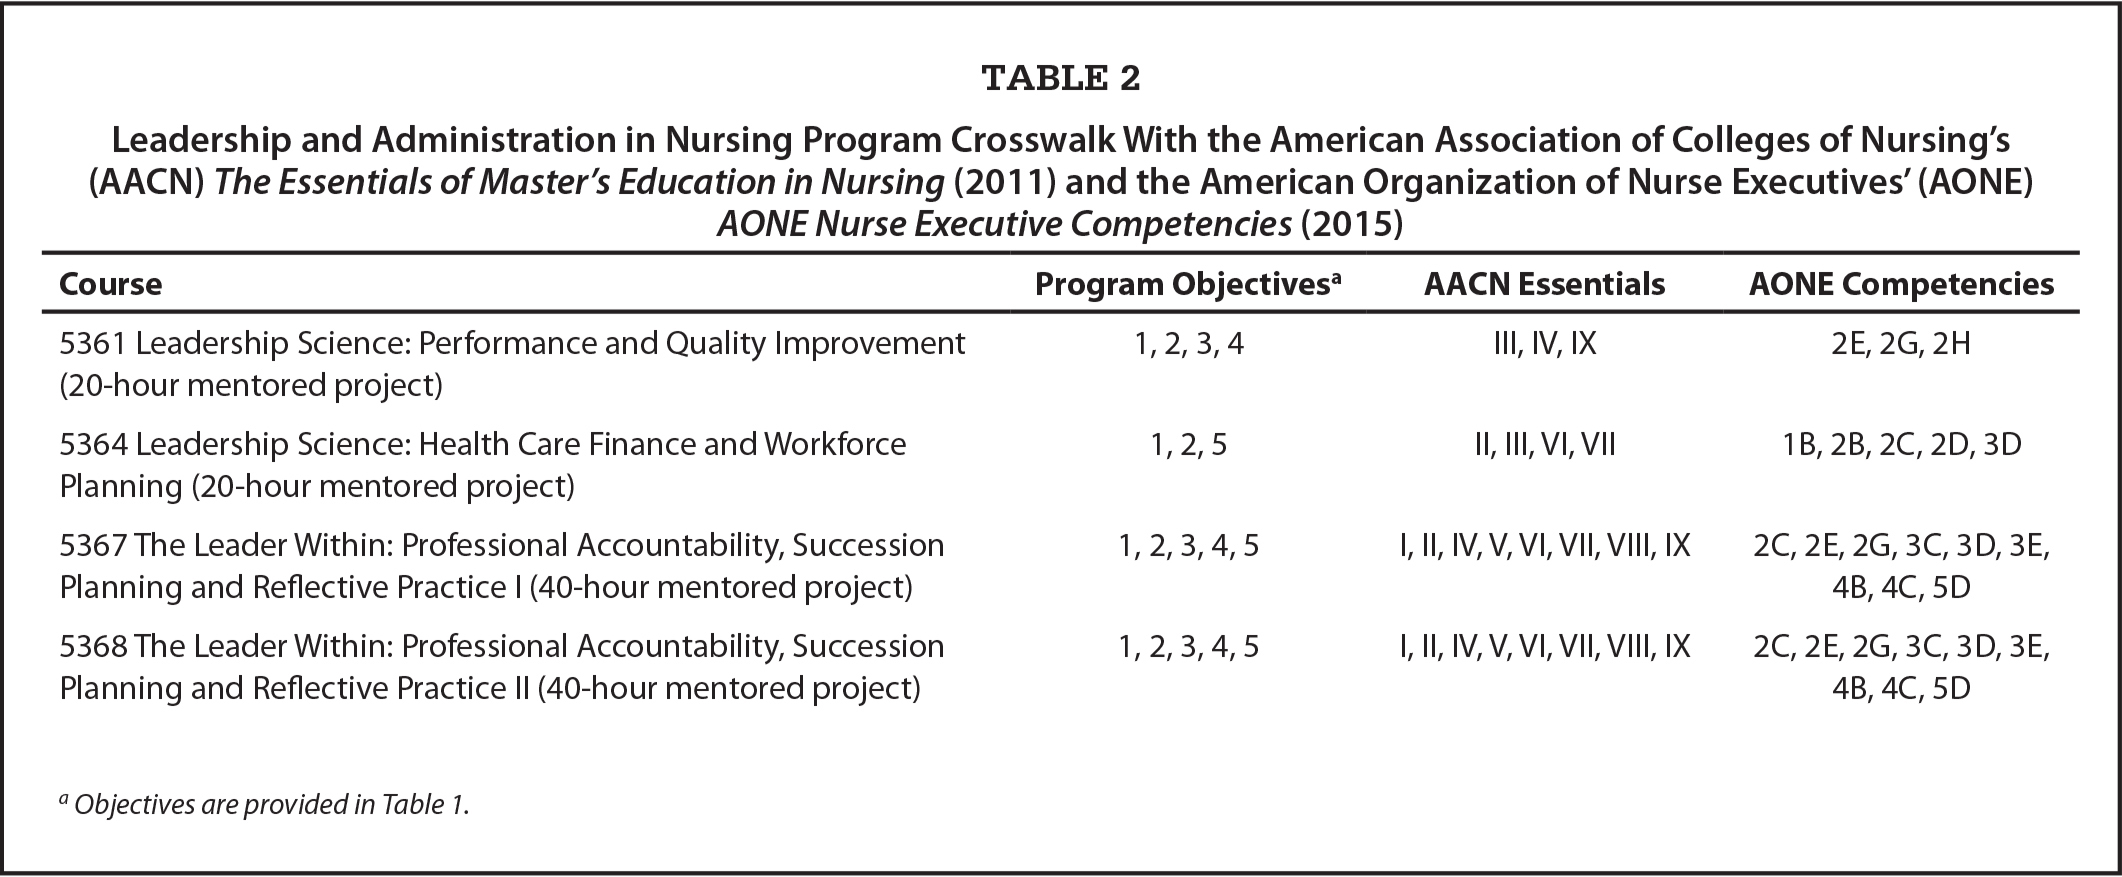 Leadership and Administration in Nursing Program Crosswalk With the American Association of Colleges of Nursing's (AACN) The Essentials of Master's Education in Nursing (2011) and the American Organization of Nurse Executives' (AONE) AONE Nurse Executive Competencies (2015)